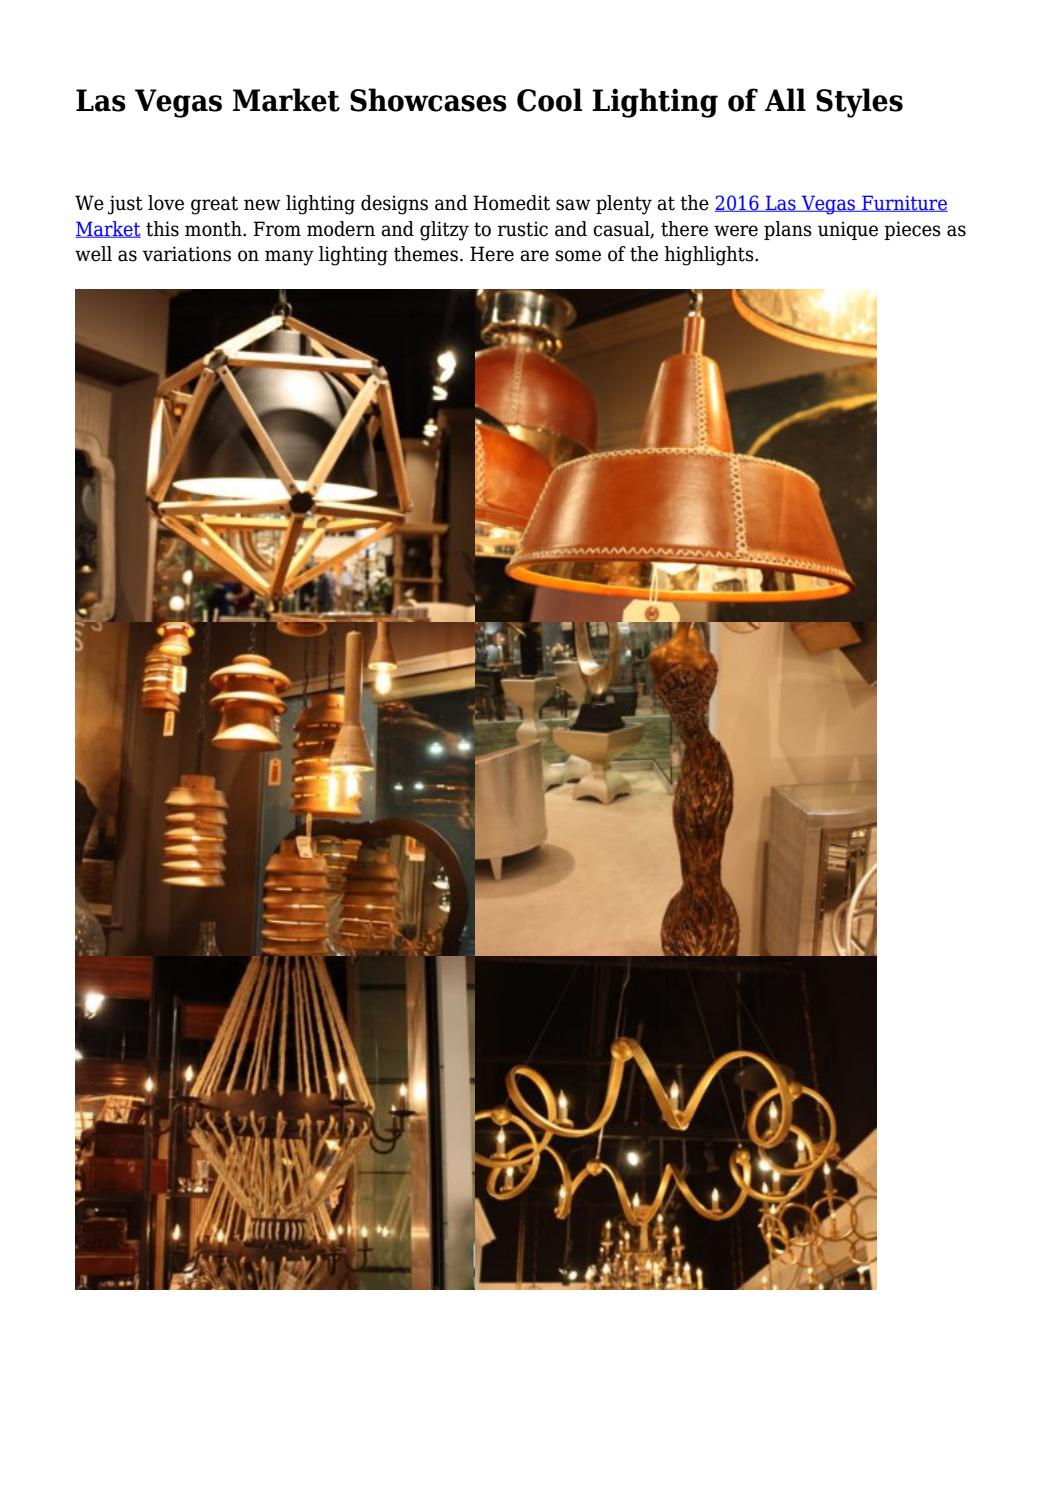 Las vegas market showcases cool lighting of all styles by greensbororemodelingpros issuu